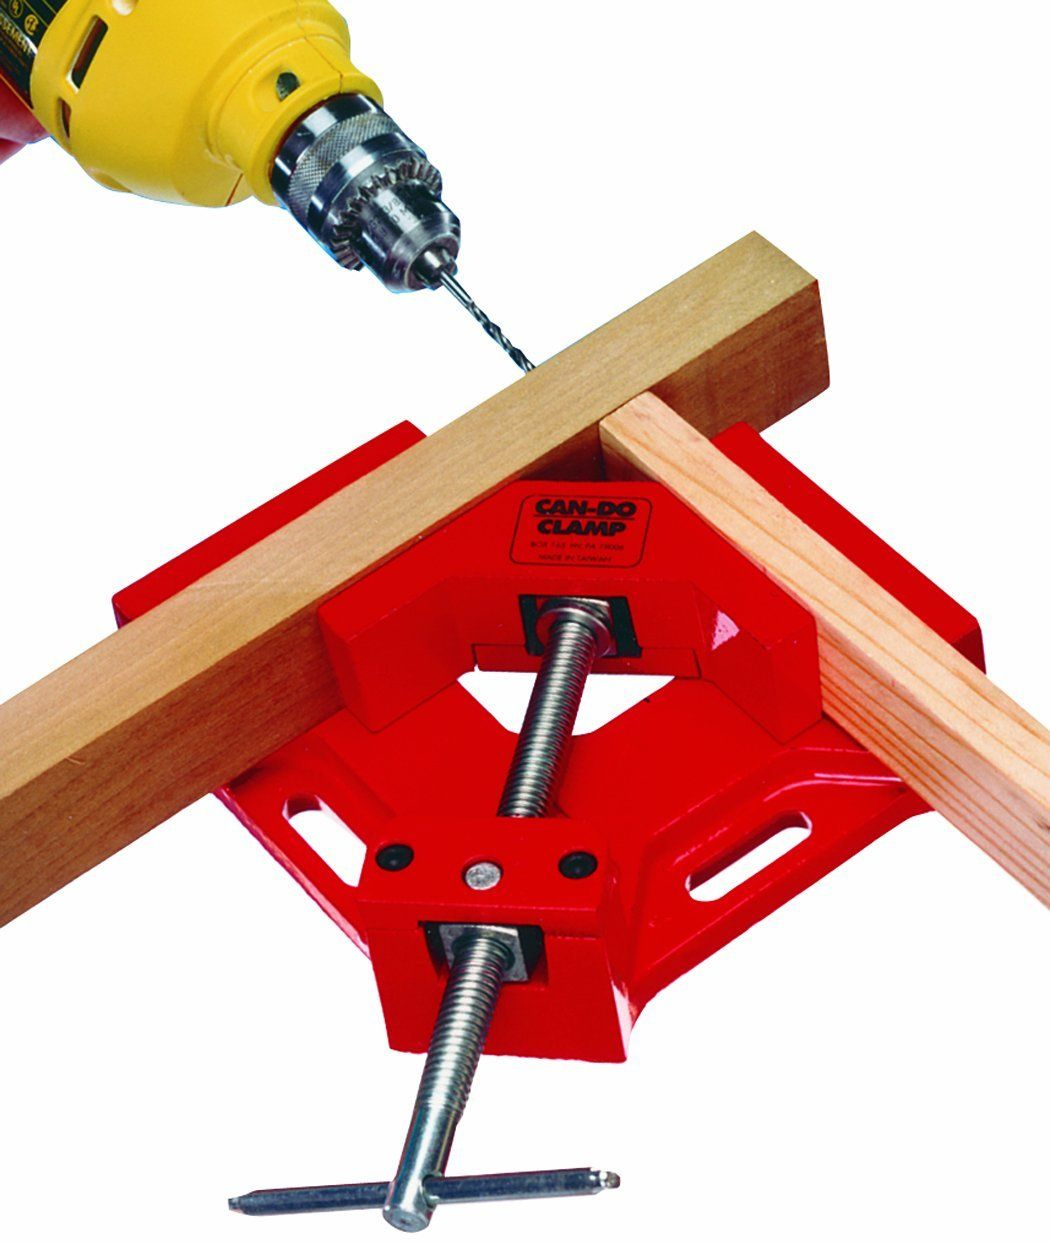 Mlcs 9001 Can Do Clamp Angle Clamps Amazon Com Woodworking Power Tools Woodworking Wood Tools